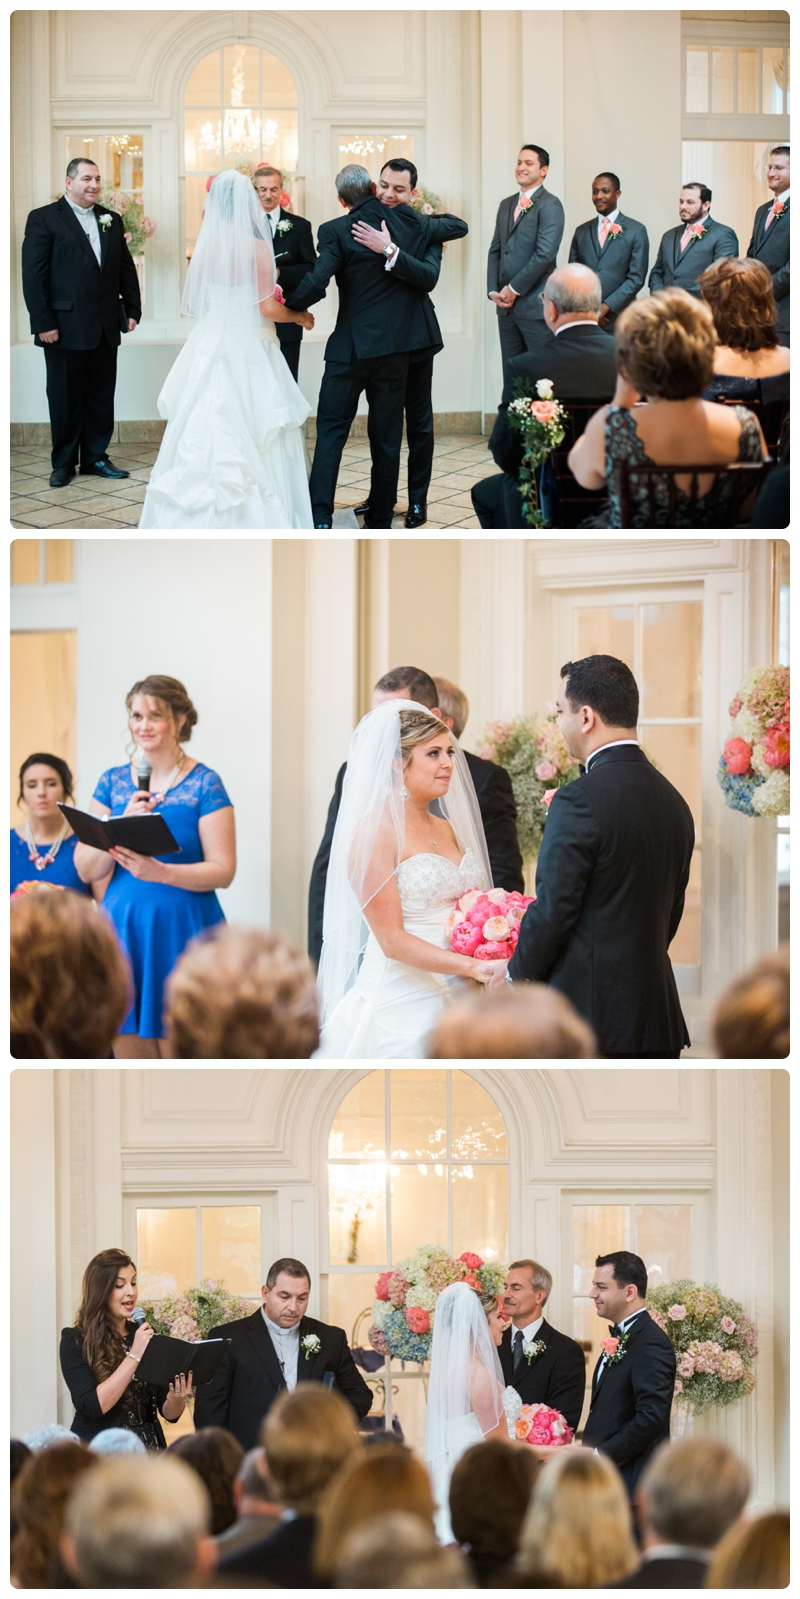 Wedding at Whitehall Estate in Bluemont Virginia by Rachael Foster Photography_0046.jpg